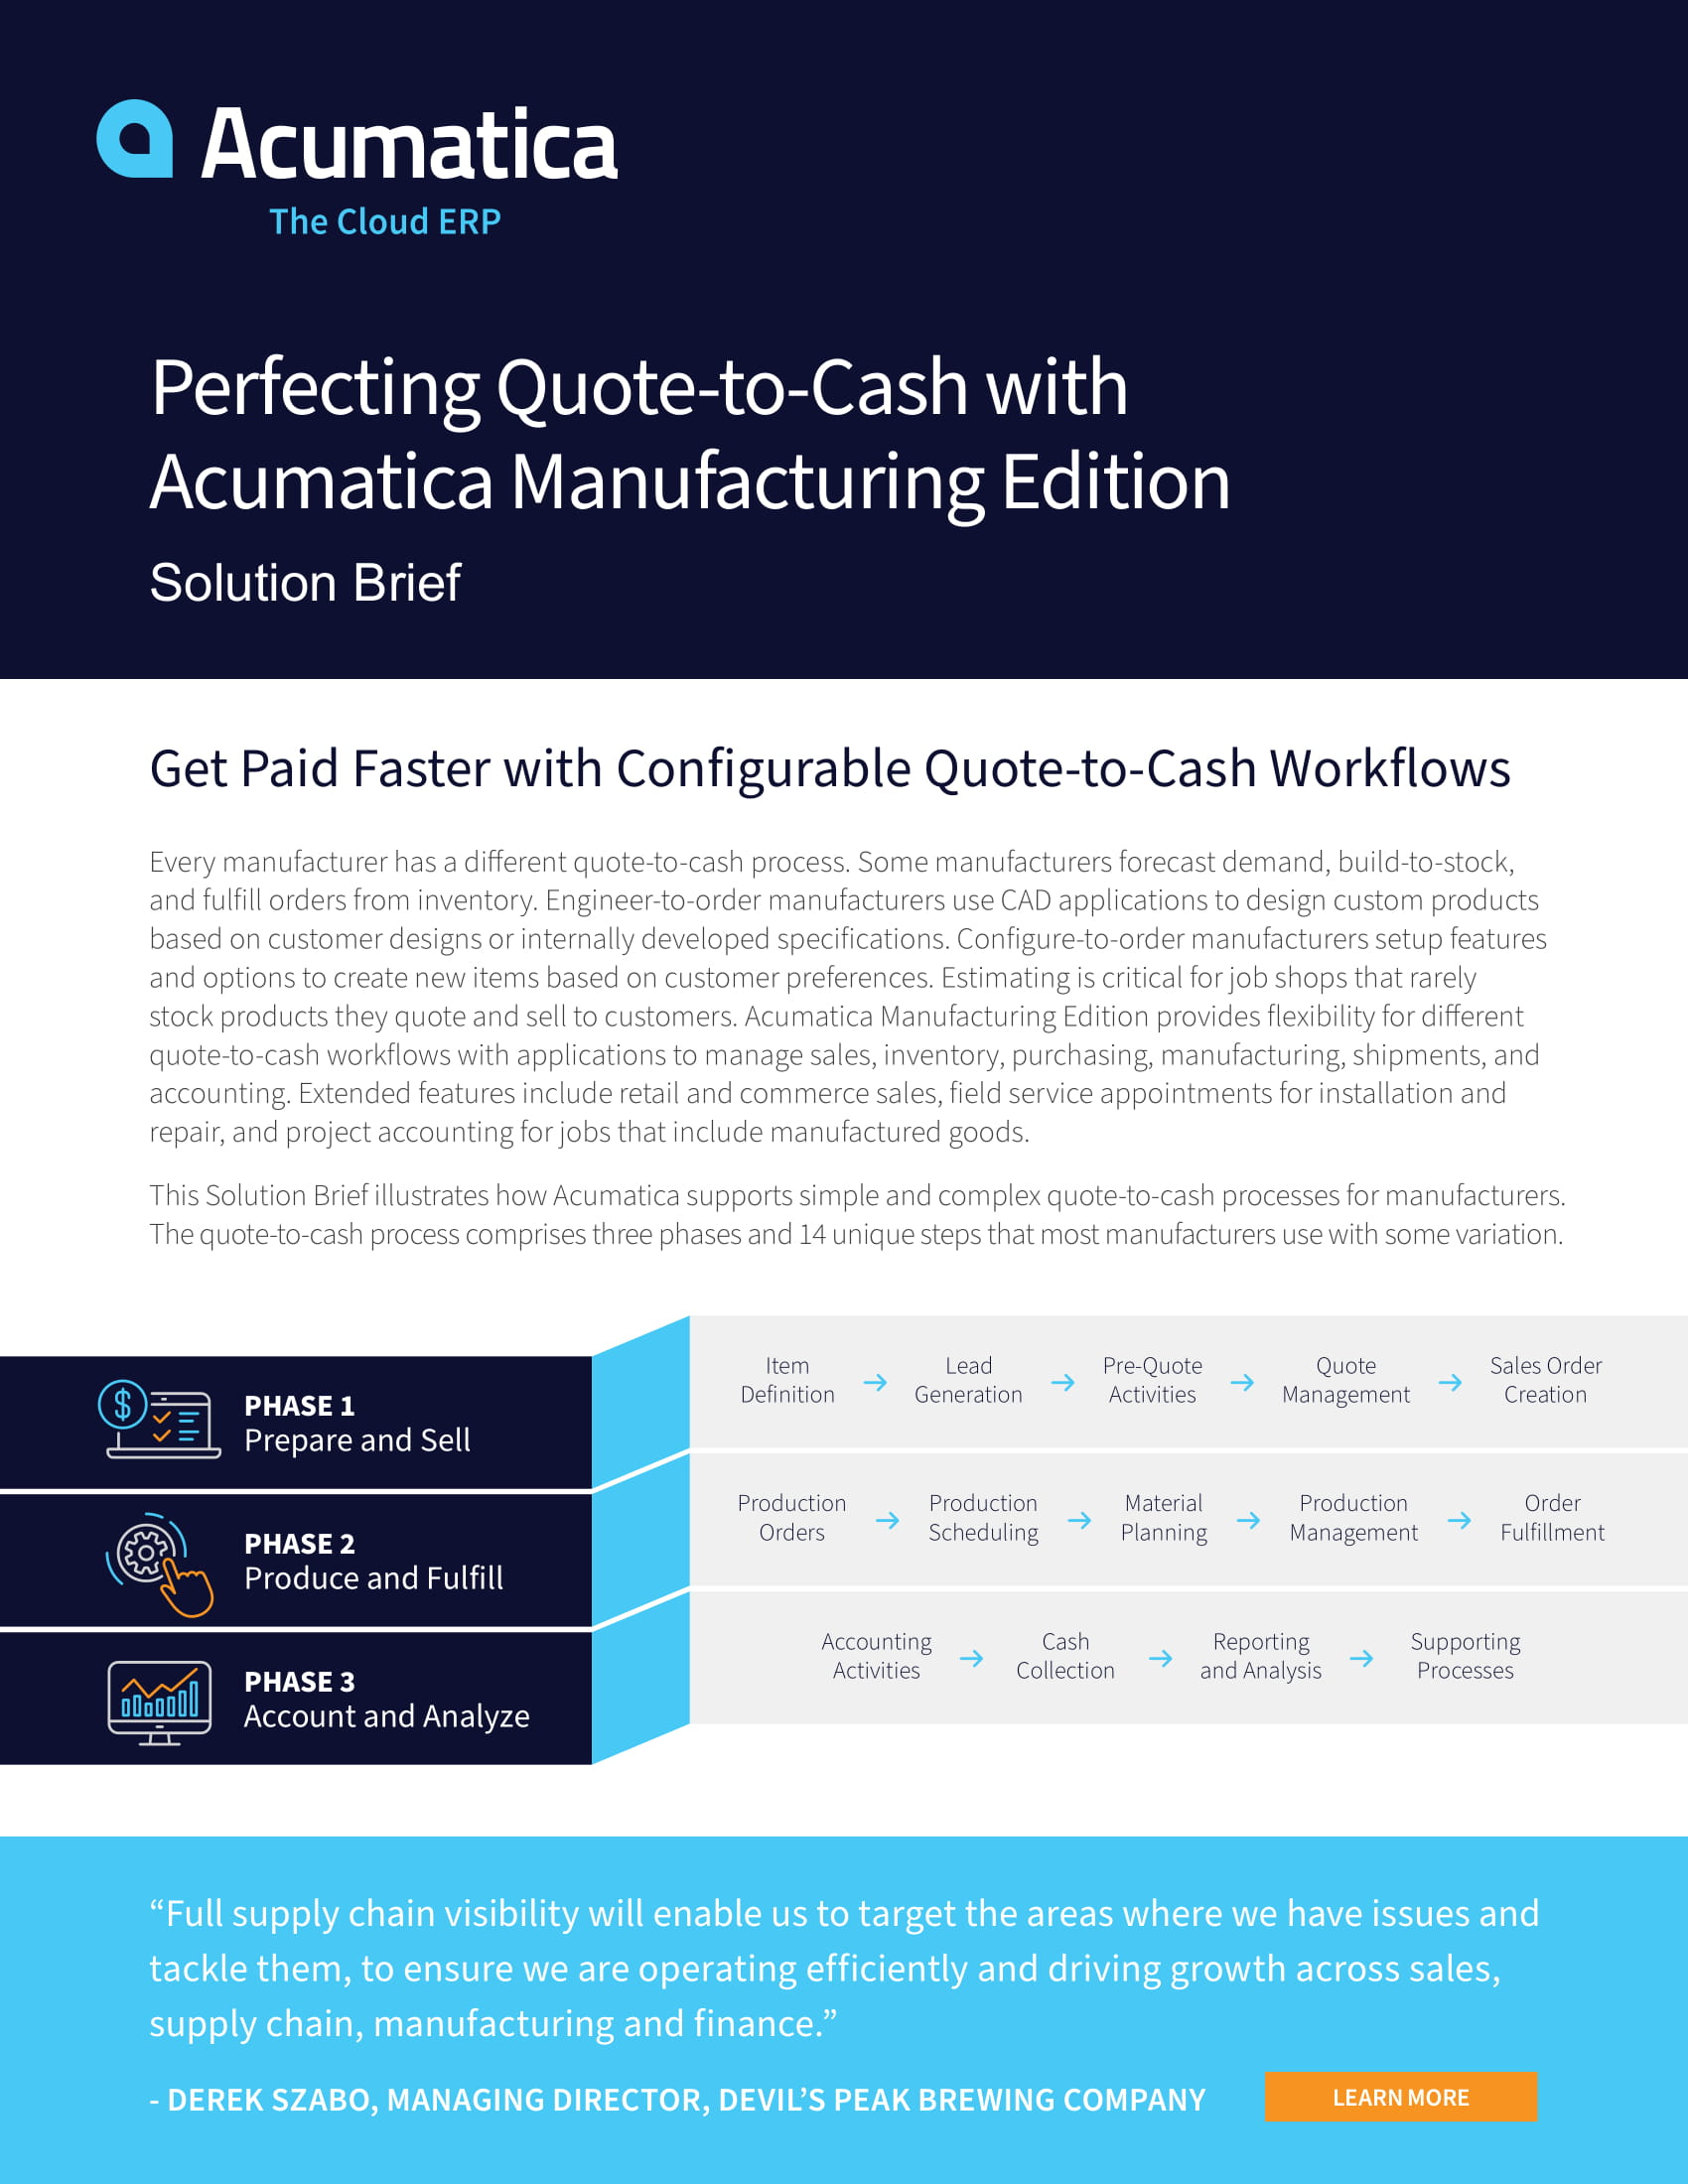 Improve Manufacturing Cash Flow with a Flexible and Automated ERP Application, page 0